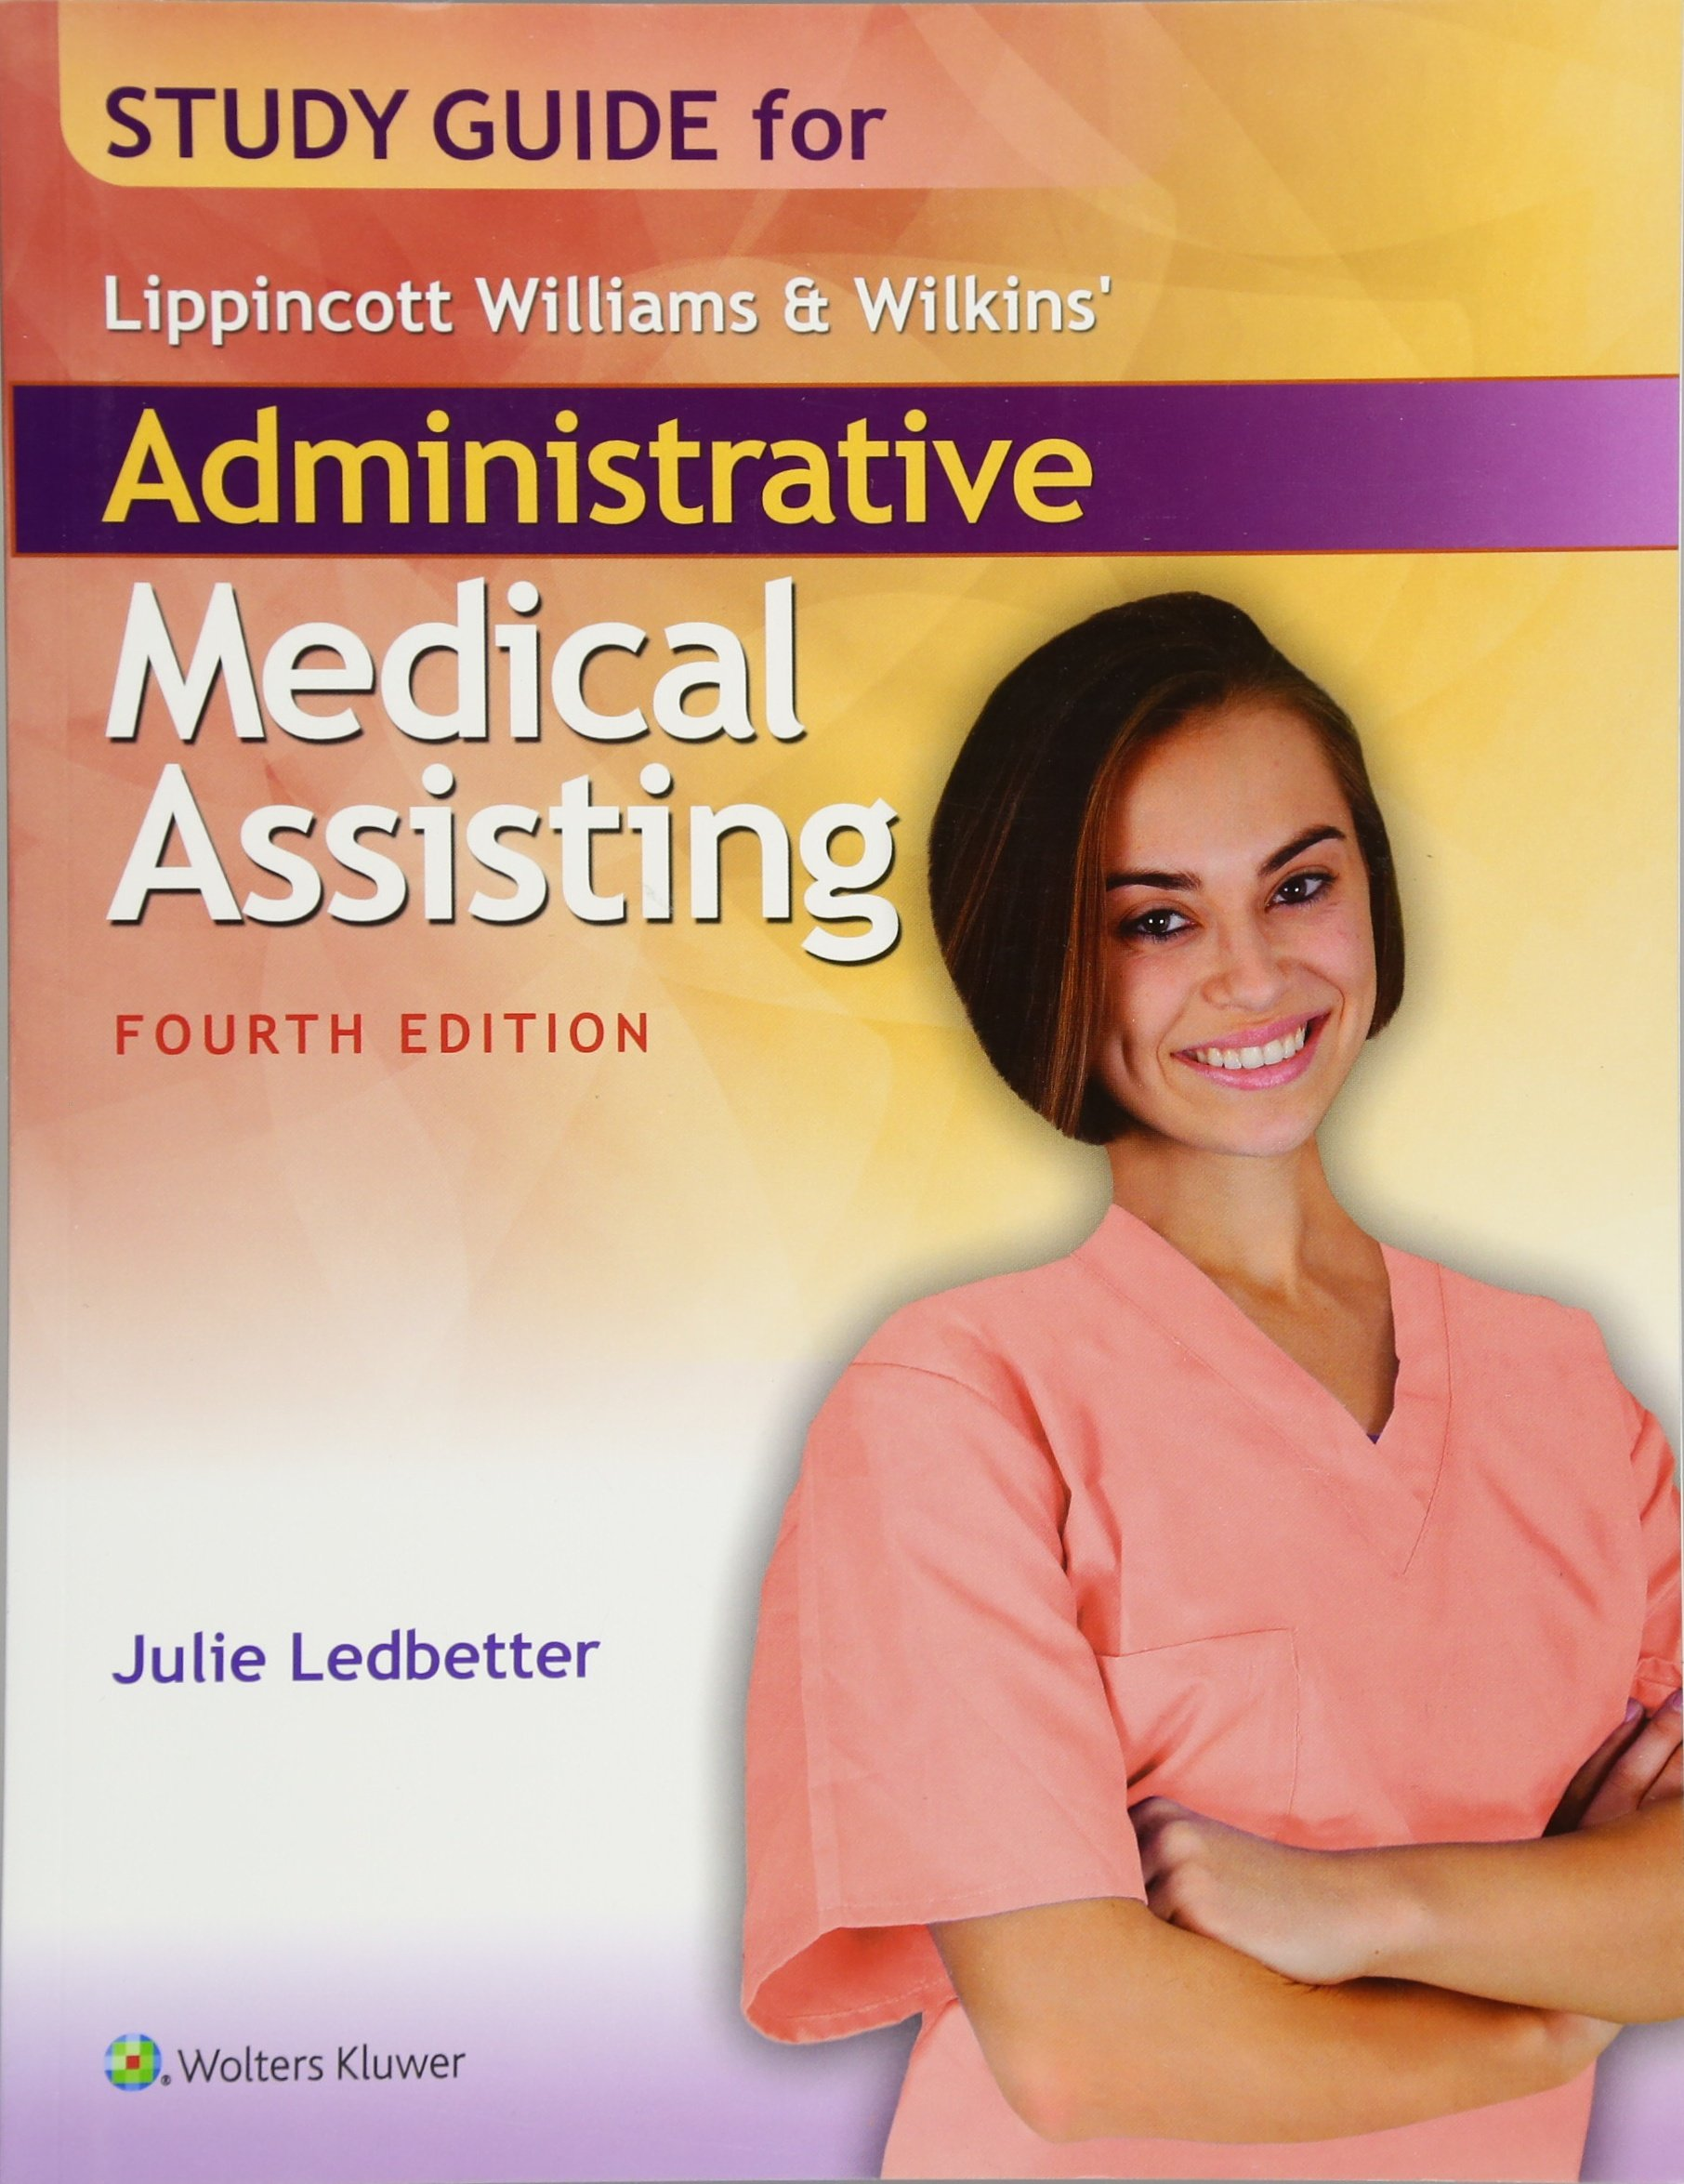 Study Guide for Lippincott Williams & Wilkins' Administrative Medical  Assisting: Amazon.co.uk: Julie Ledbetter: Books